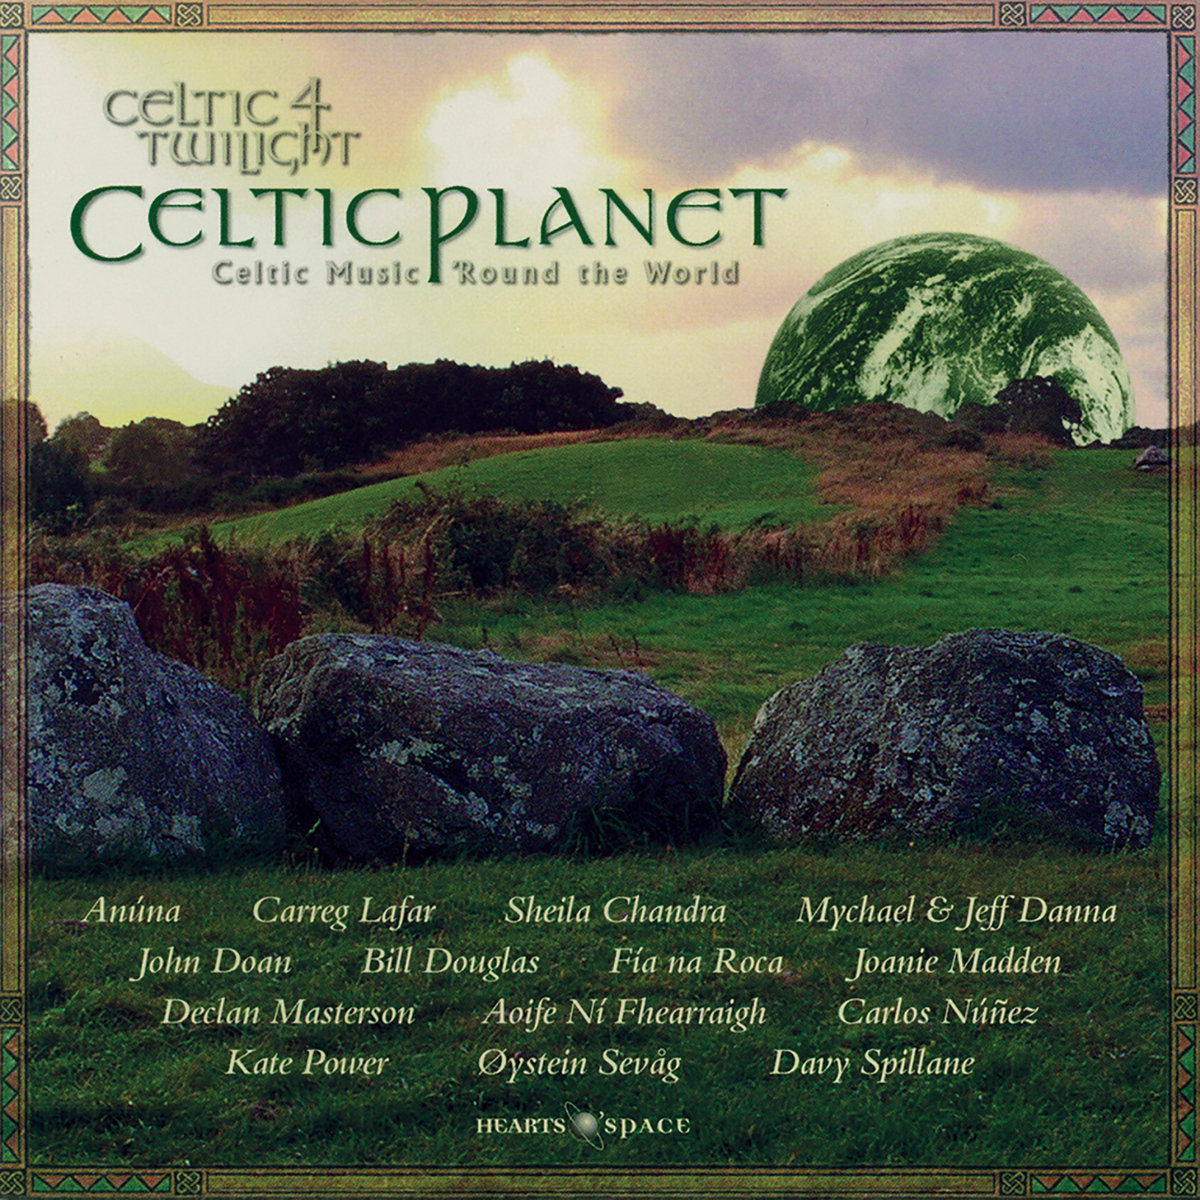 Celtic Twilight 4: Celtic Planet | Hearts of Space Records